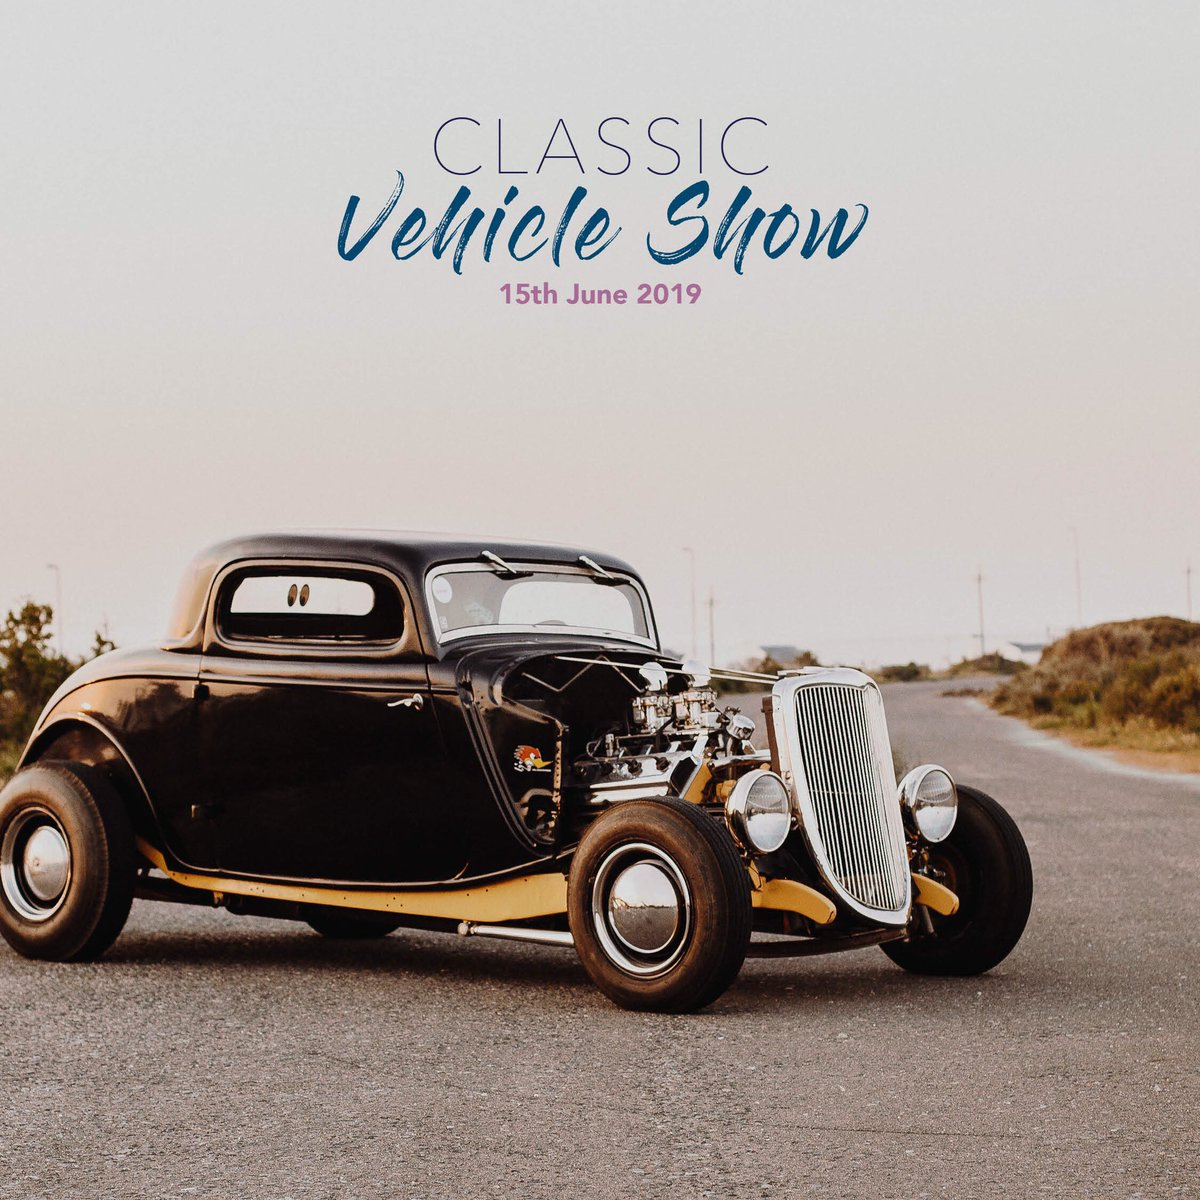 We are delighted to be bringing back our Classic Vehicle Show to Edinburgh's West End for the second year in a row on the 15th of June 🚙 Last year was a bustling day filled with stunning cars, live music and much more! More details to follow! #edinburghswestend #thisisedinburgh